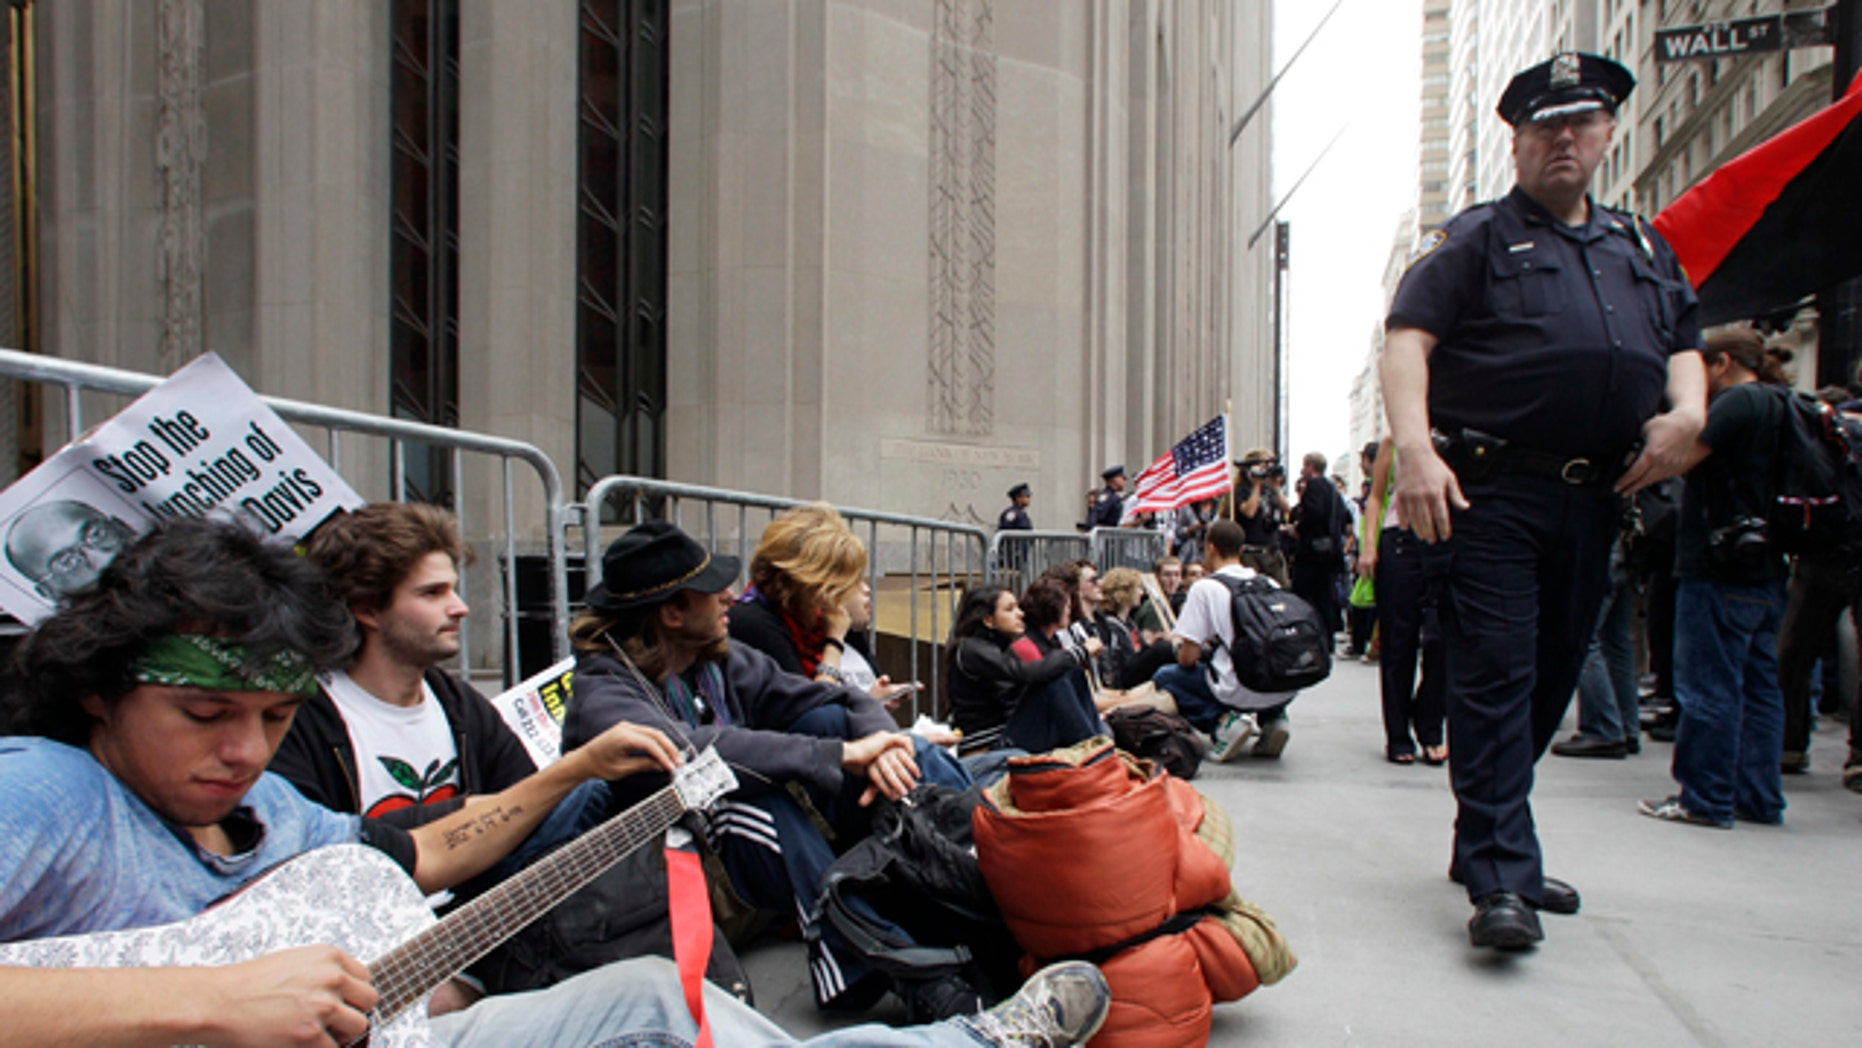 Sept. 17: Demonstrators gather in front of a police barricade to call for the occupation of Wall Street in New York.